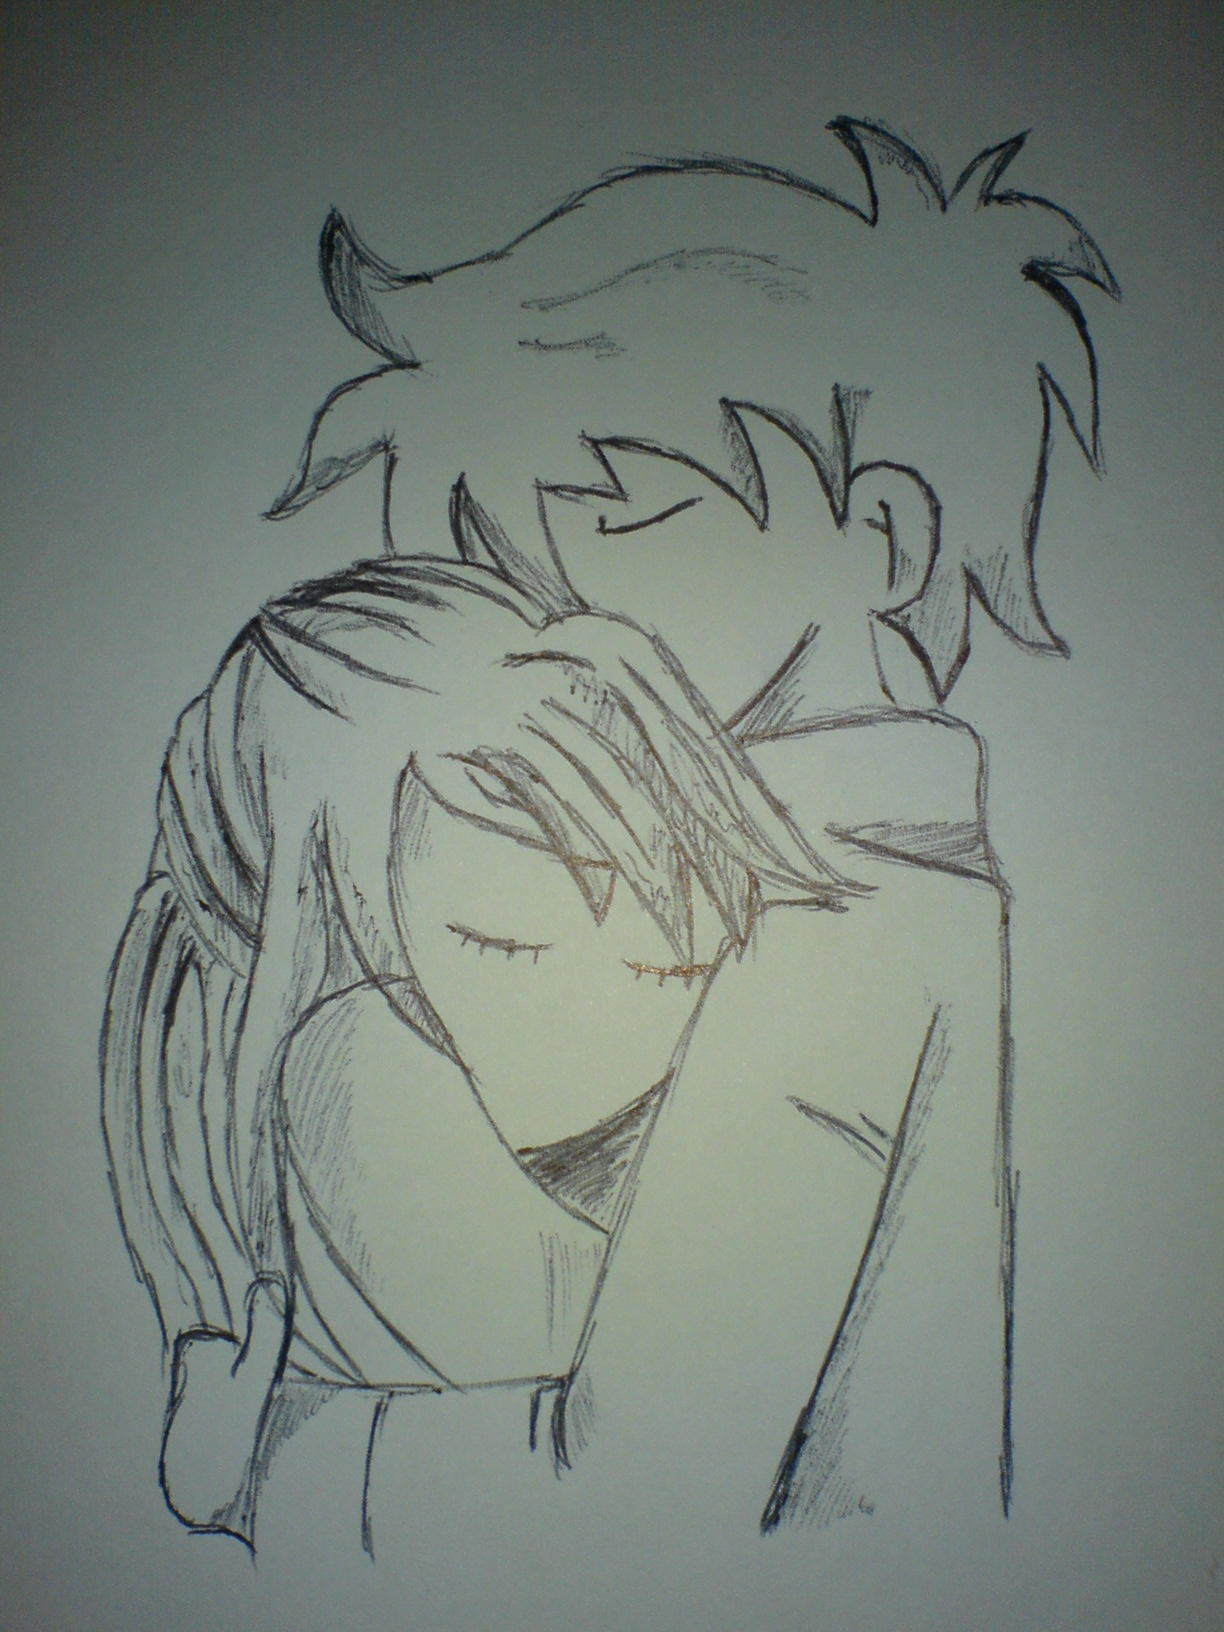 Boy and Girl cute hug 2007 by manolos69 on DeviantArt